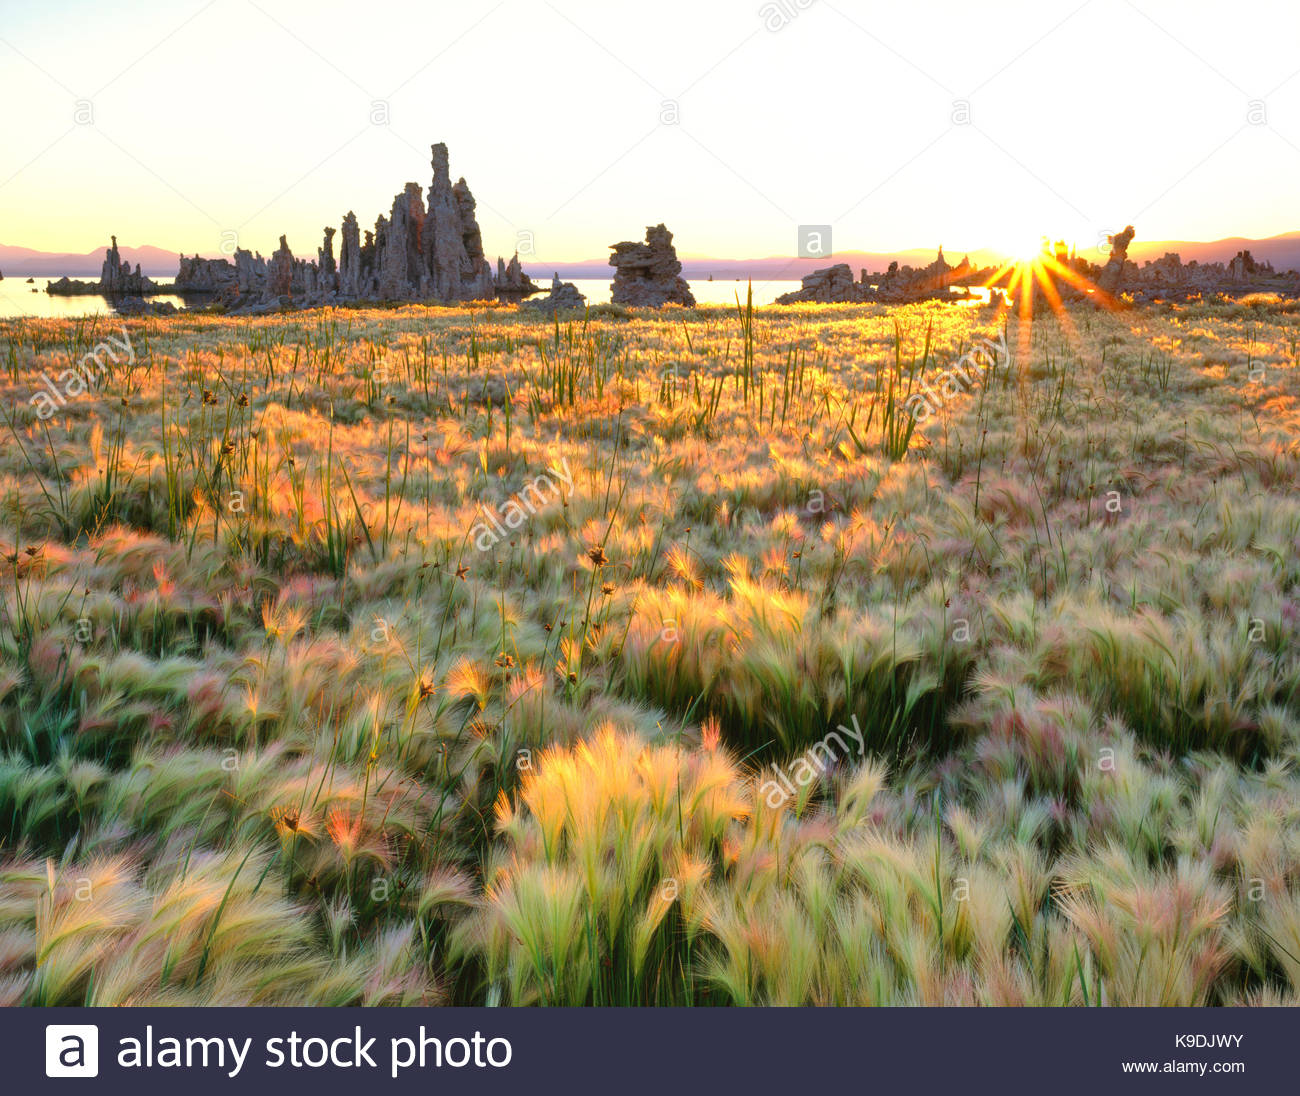 Rising Sun on Wild Barley and Tufa Formations, Mono Lake, Mono Basin National Forest Scenic Area, California - Stock Image